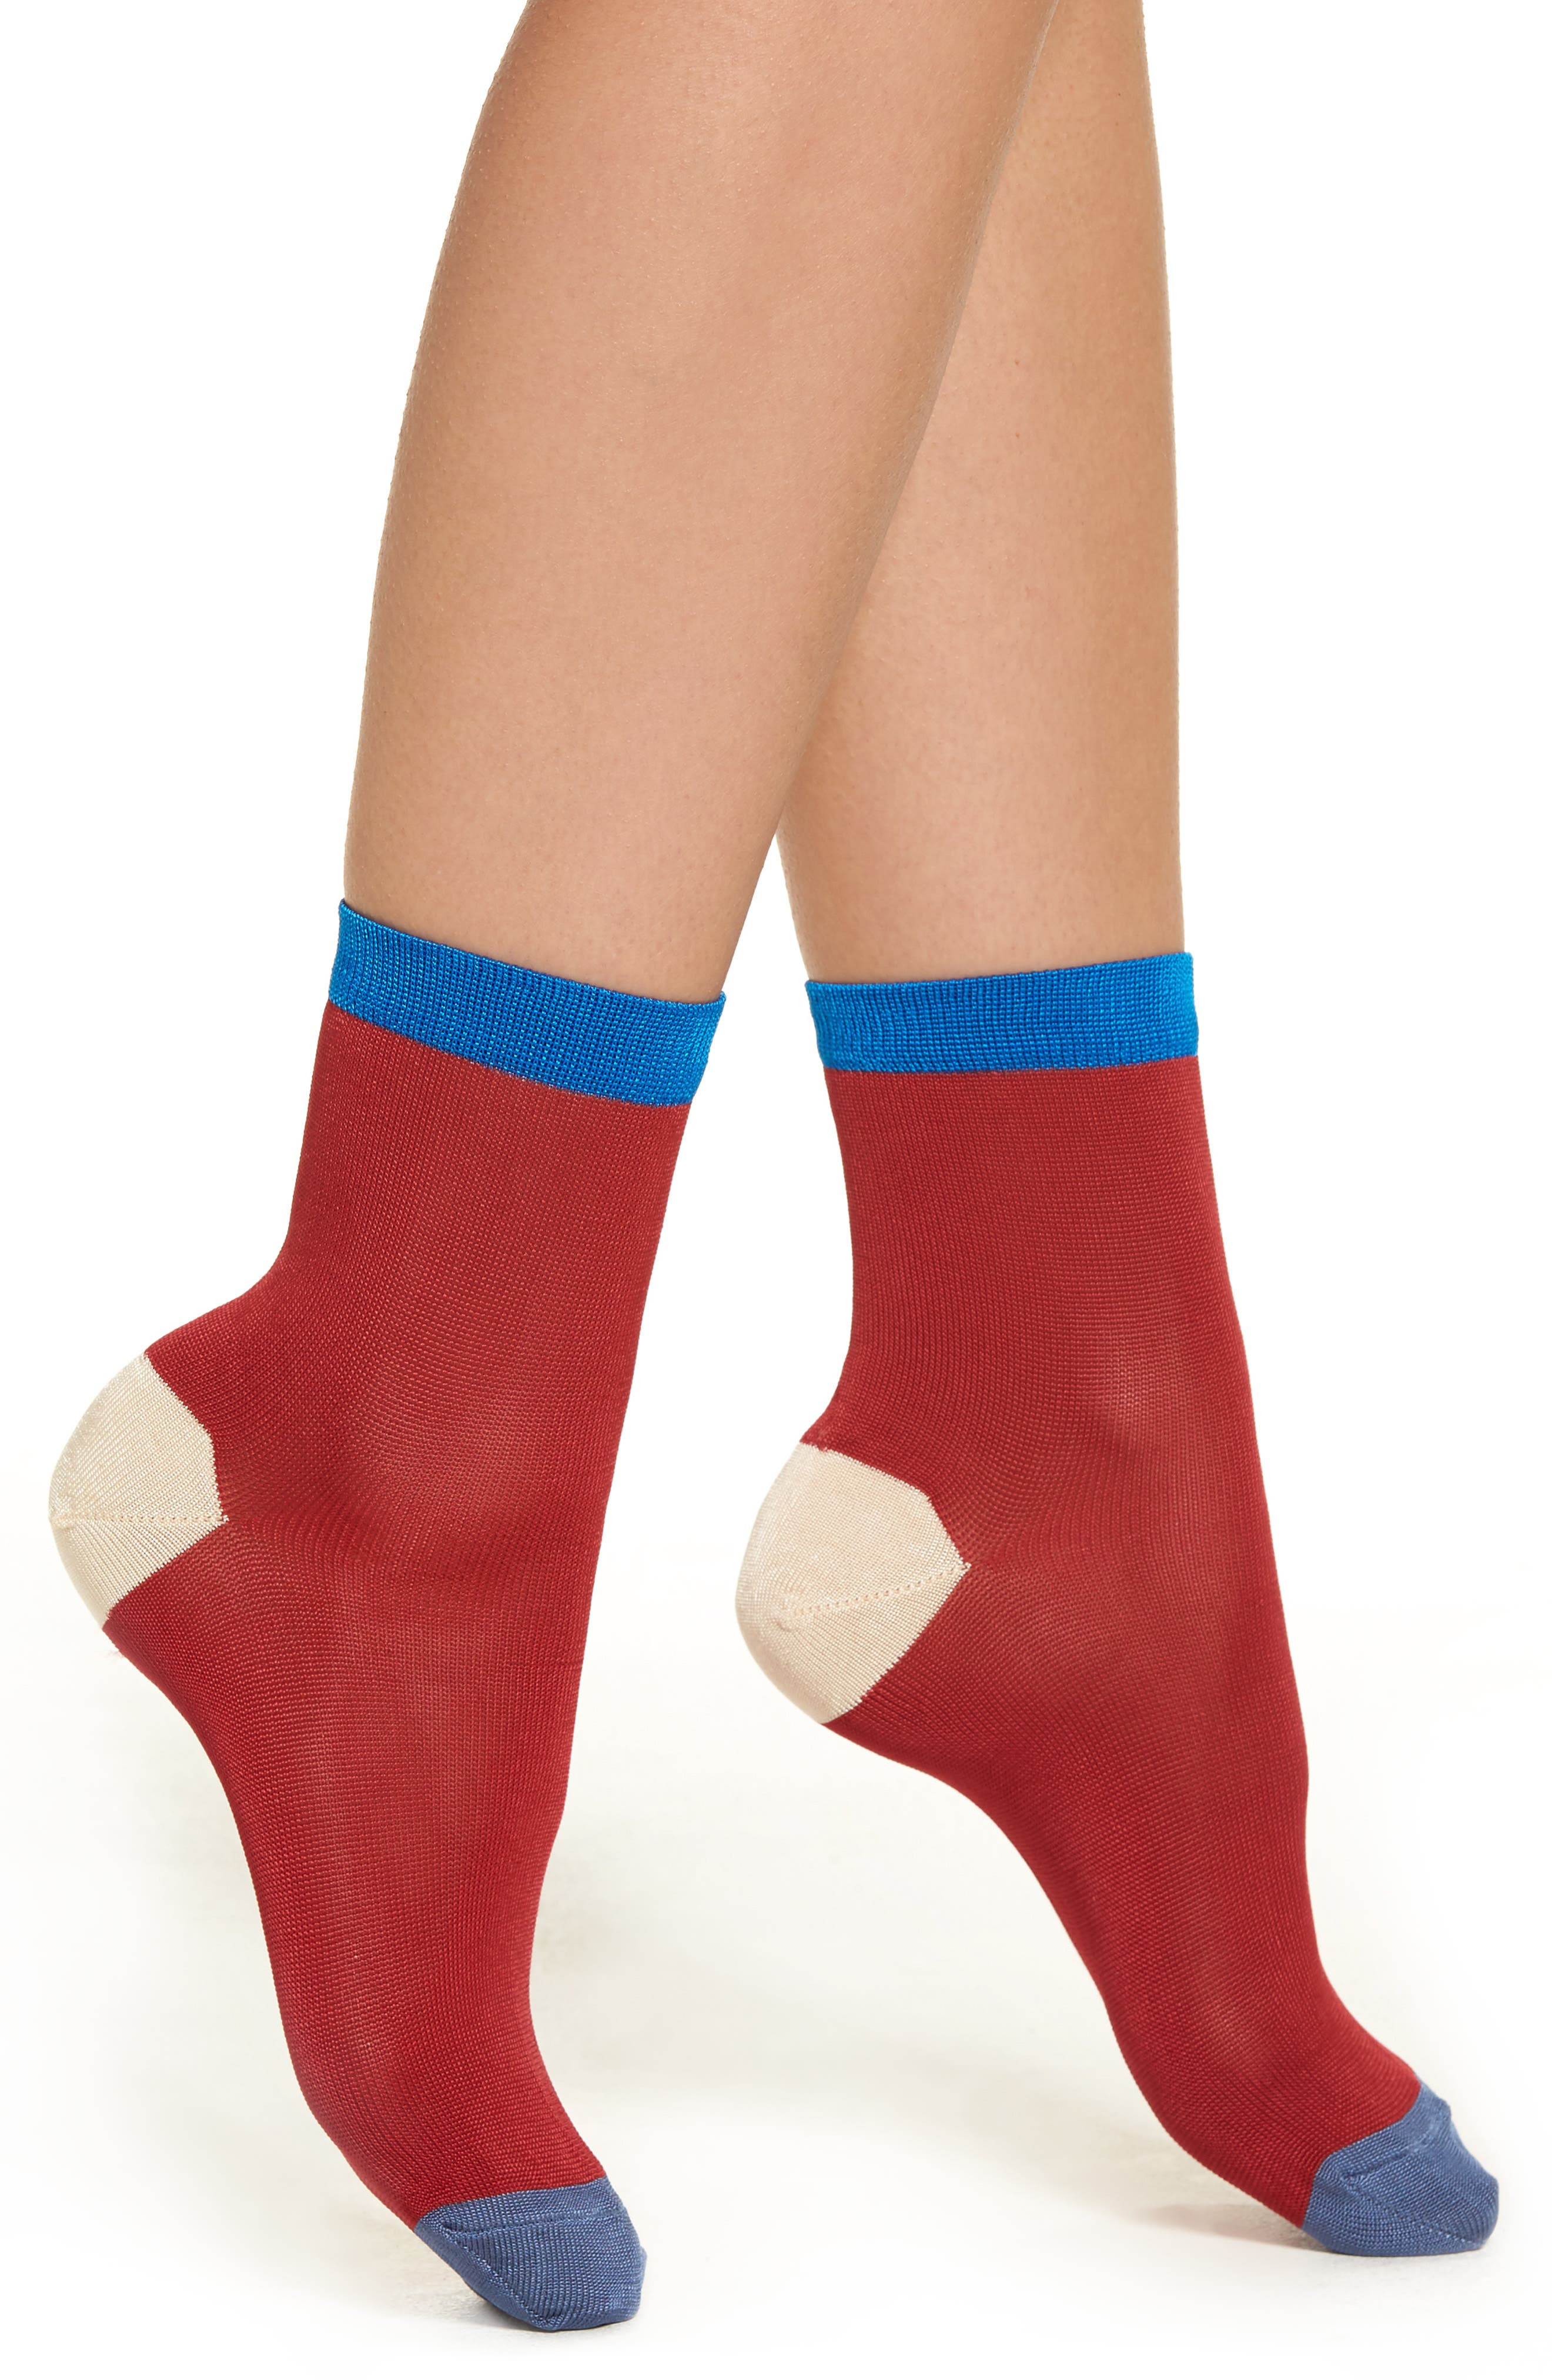 Grace Colorblock Ankle Socks,                         Main,                         color, Red